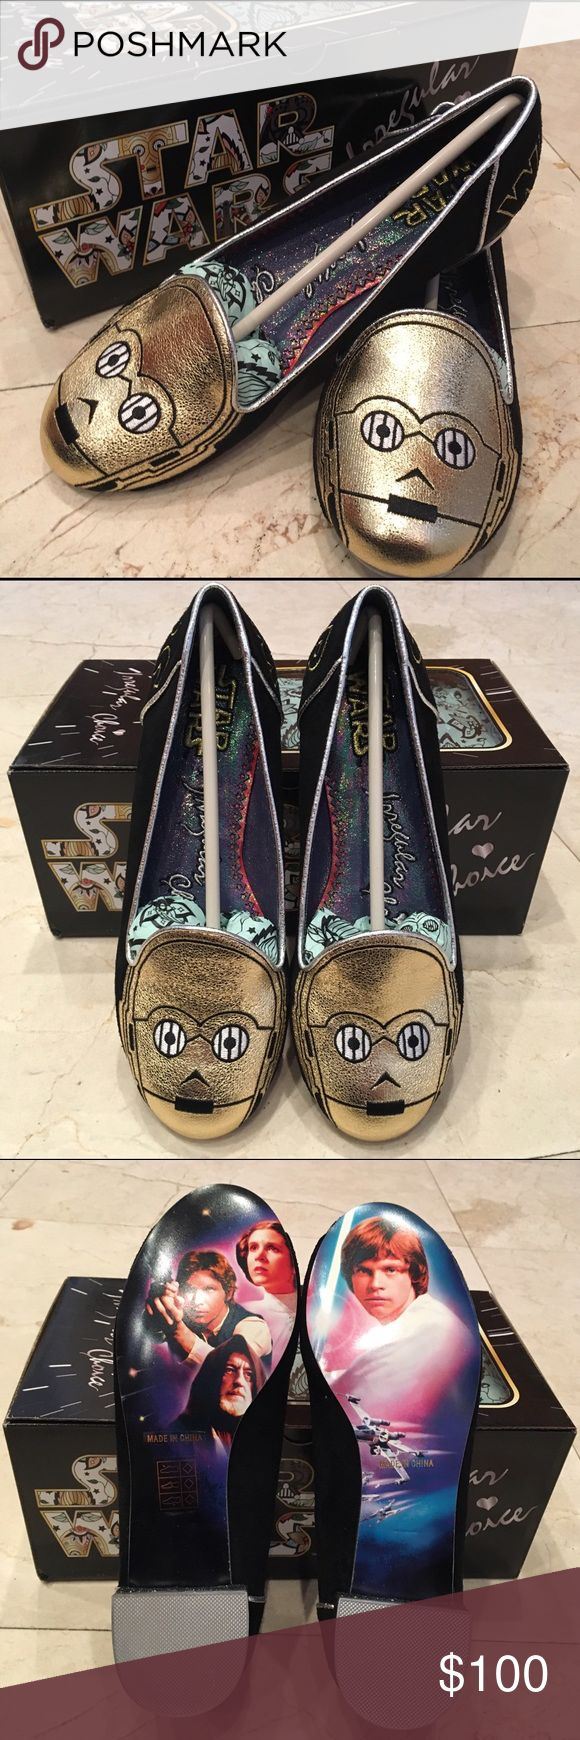 "Irregular Choice Star Wars Flats C-3PO Flats - Limited Edition •Officially-licensed Star Wars merchandise  •C-3PO's head in gold applique and black thread  on both toes •""Star"" embroidered in gold on one heel and the word ""Wars"" on the other •Silver edge dressing with glitter on the heel itself •Iridescent inner •Full-color classic images on the sole They paid attention to all the details - even the tissue paper is Star-Wars-inspired Materials: PU & black faux-suede fabric Heel height: 0.7""…"